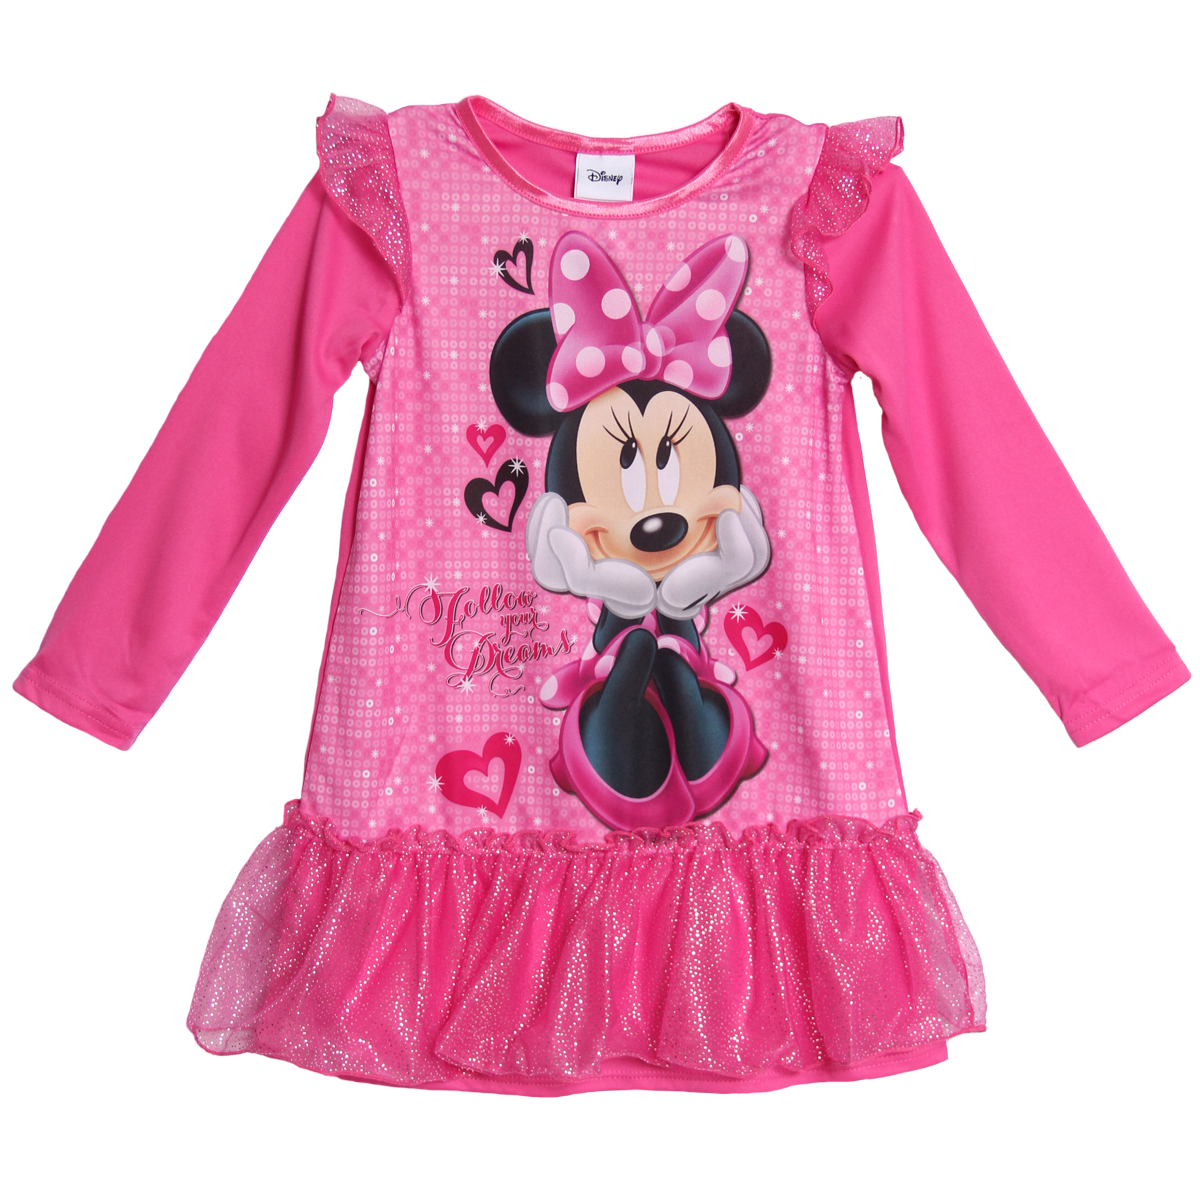 Disney Minnie Mouse Toddler Girls 1 Piece Pink Glitter Nightgown Sleepwear at Sears.com